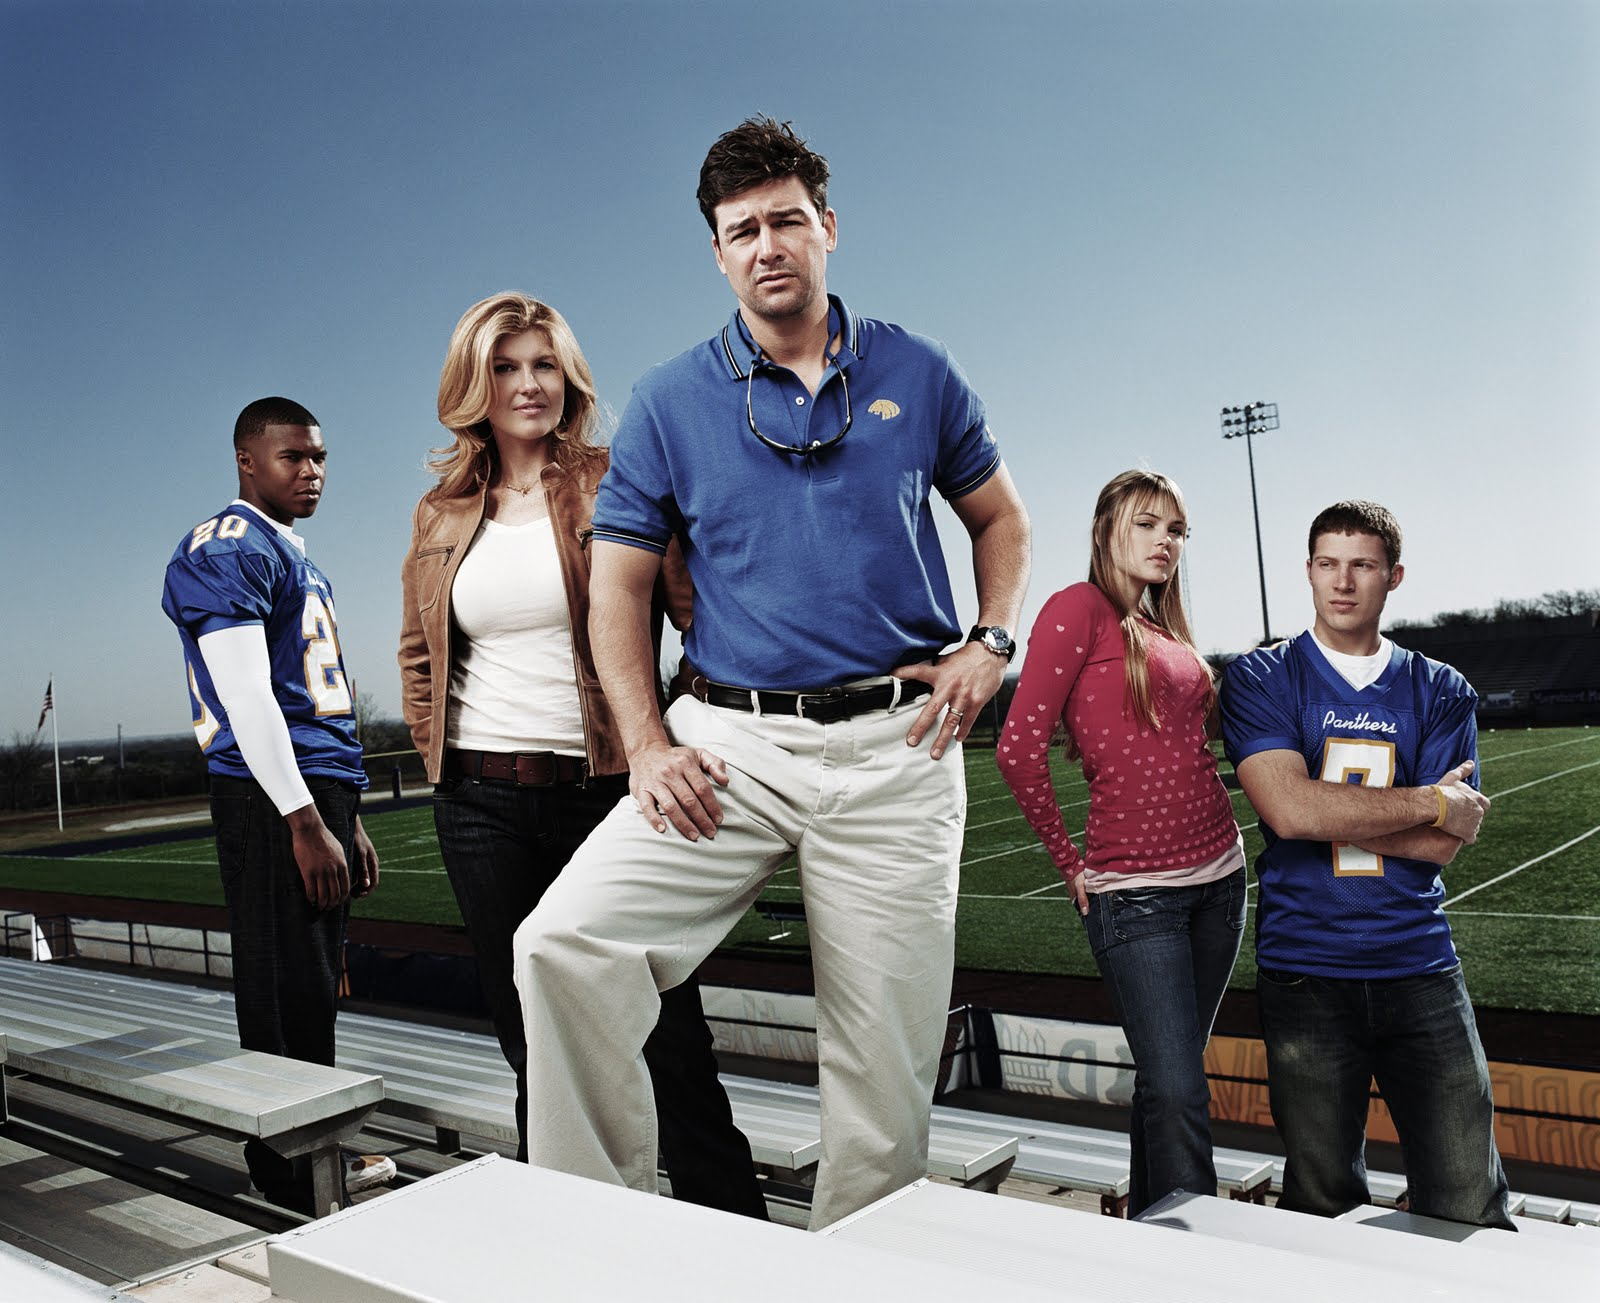 friday night lights cast dating Featuring a powerful all-star cast led by kyle chandler and connie friday night lights the third season: tyra and landry dating as an official couple.